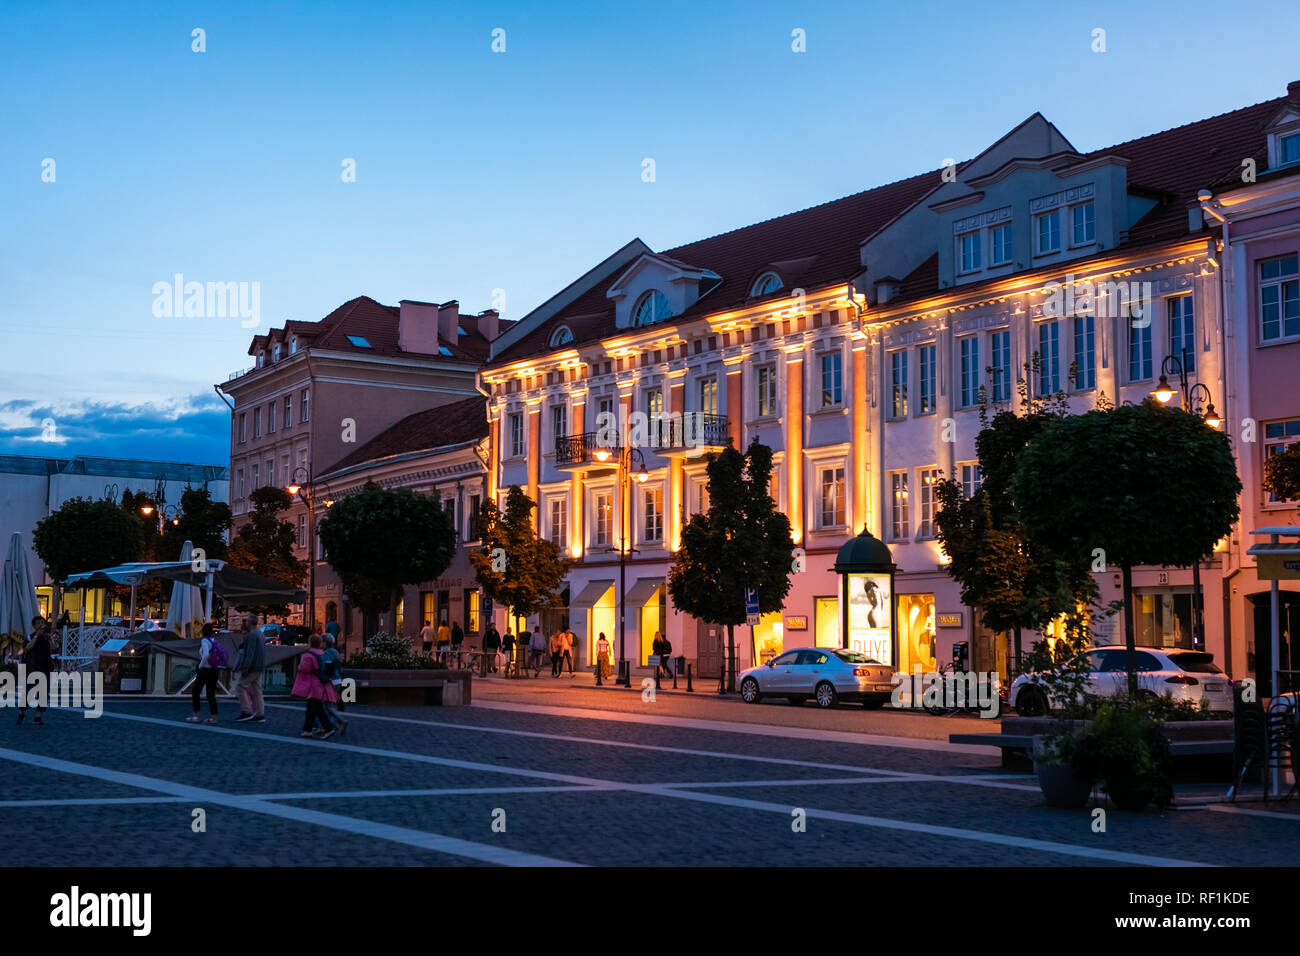 Town Hall Square in Old Town at night of Vilnius, Lithuania, Baltic states. - Stock Image